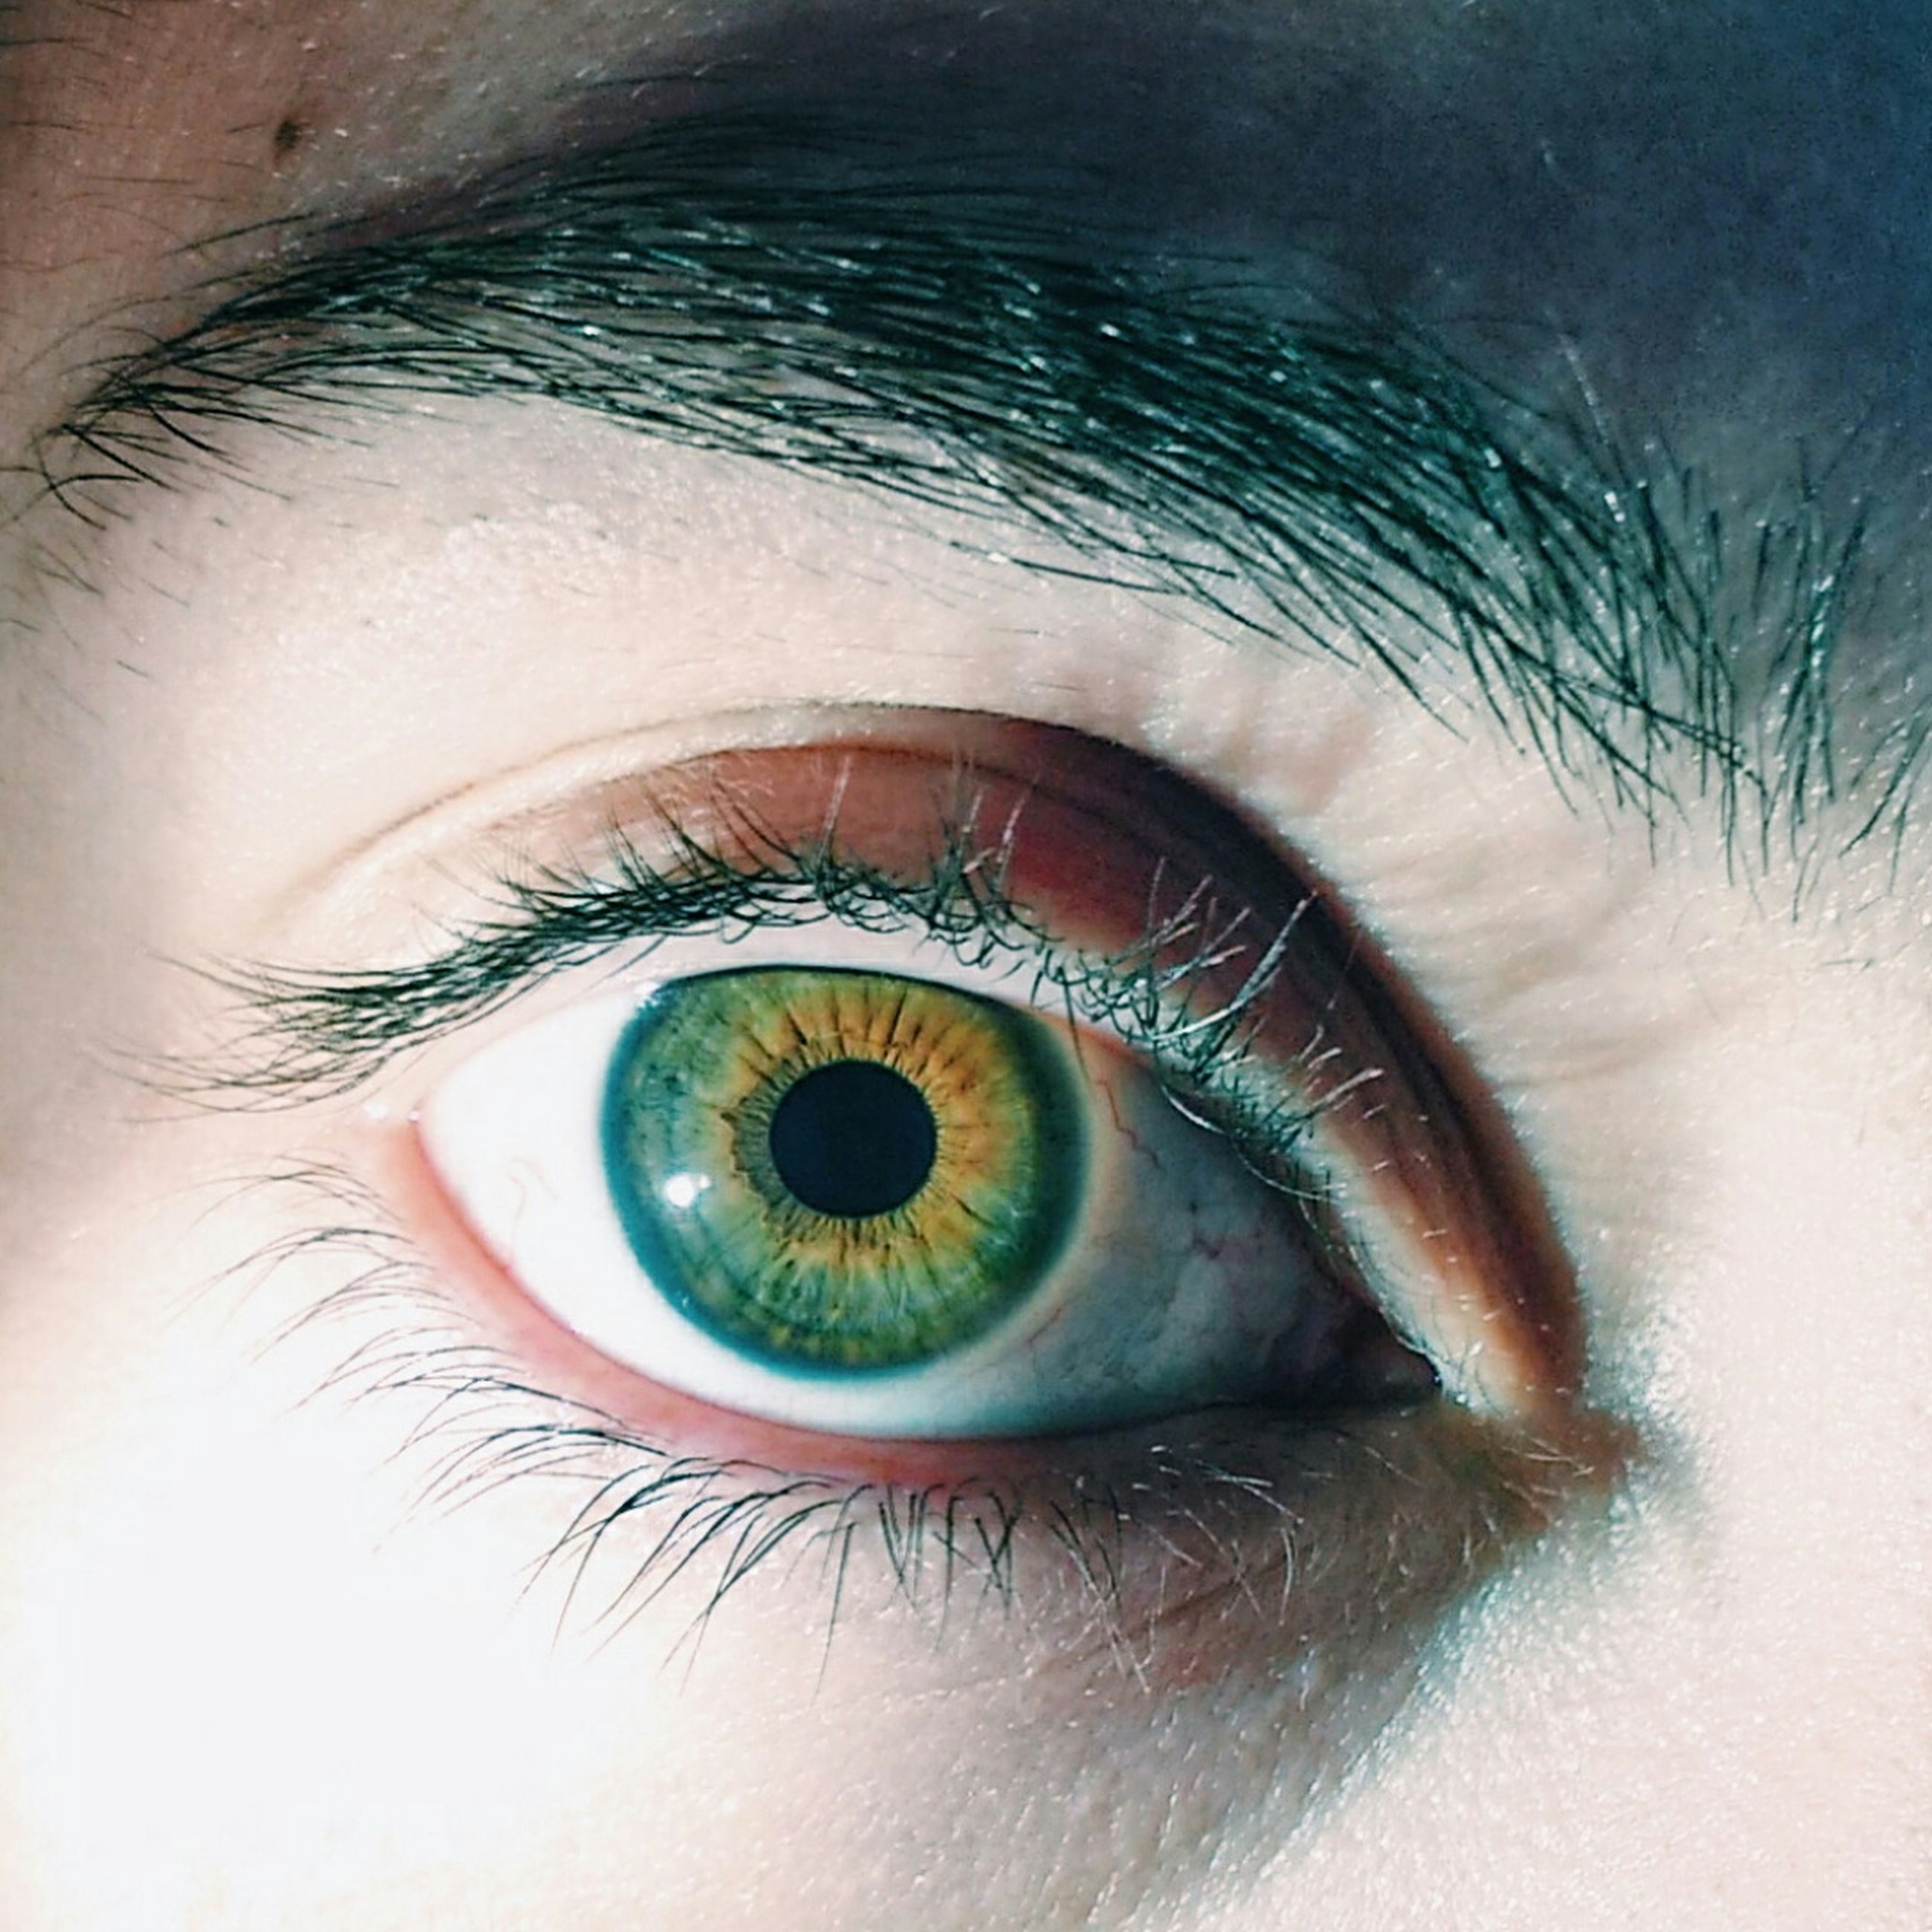 human eye, eyelash, eyesight, close-up, sensory perception, part of, looking at camera, iris - eye, portrait, eyeball, unrecognizable person, reflection, lifestyles, extreme close-up, indoors, human skin, full frame